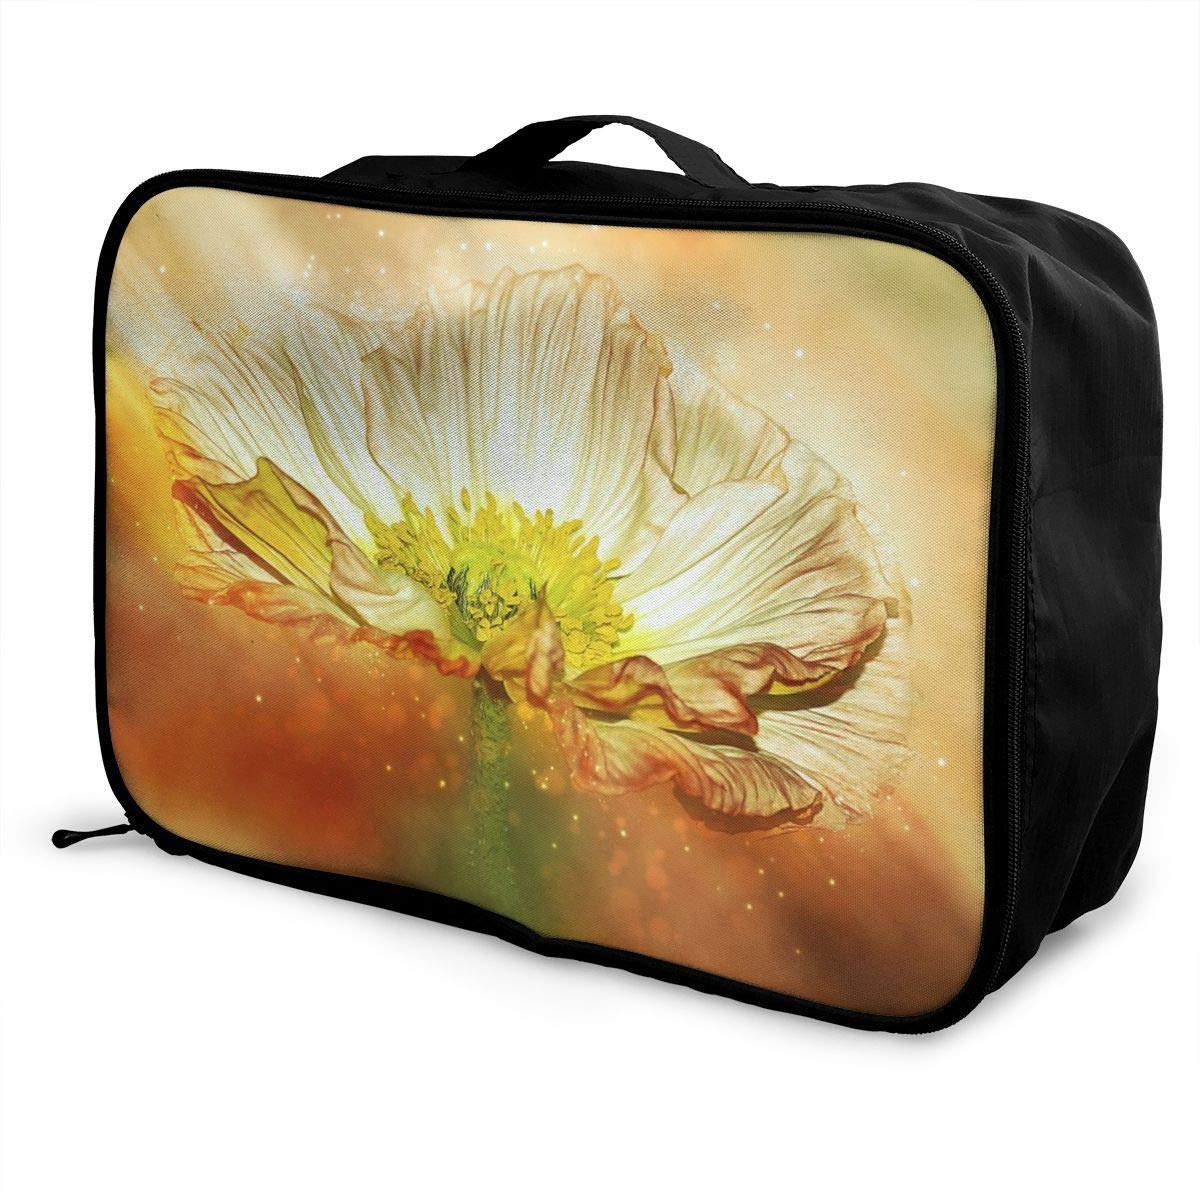 Anemone Blooming FLOWER Travel Lightweight Waterproof Foldable Storage Carry Luggage Large Capacity Portable Luggage Bag Duffel Bag